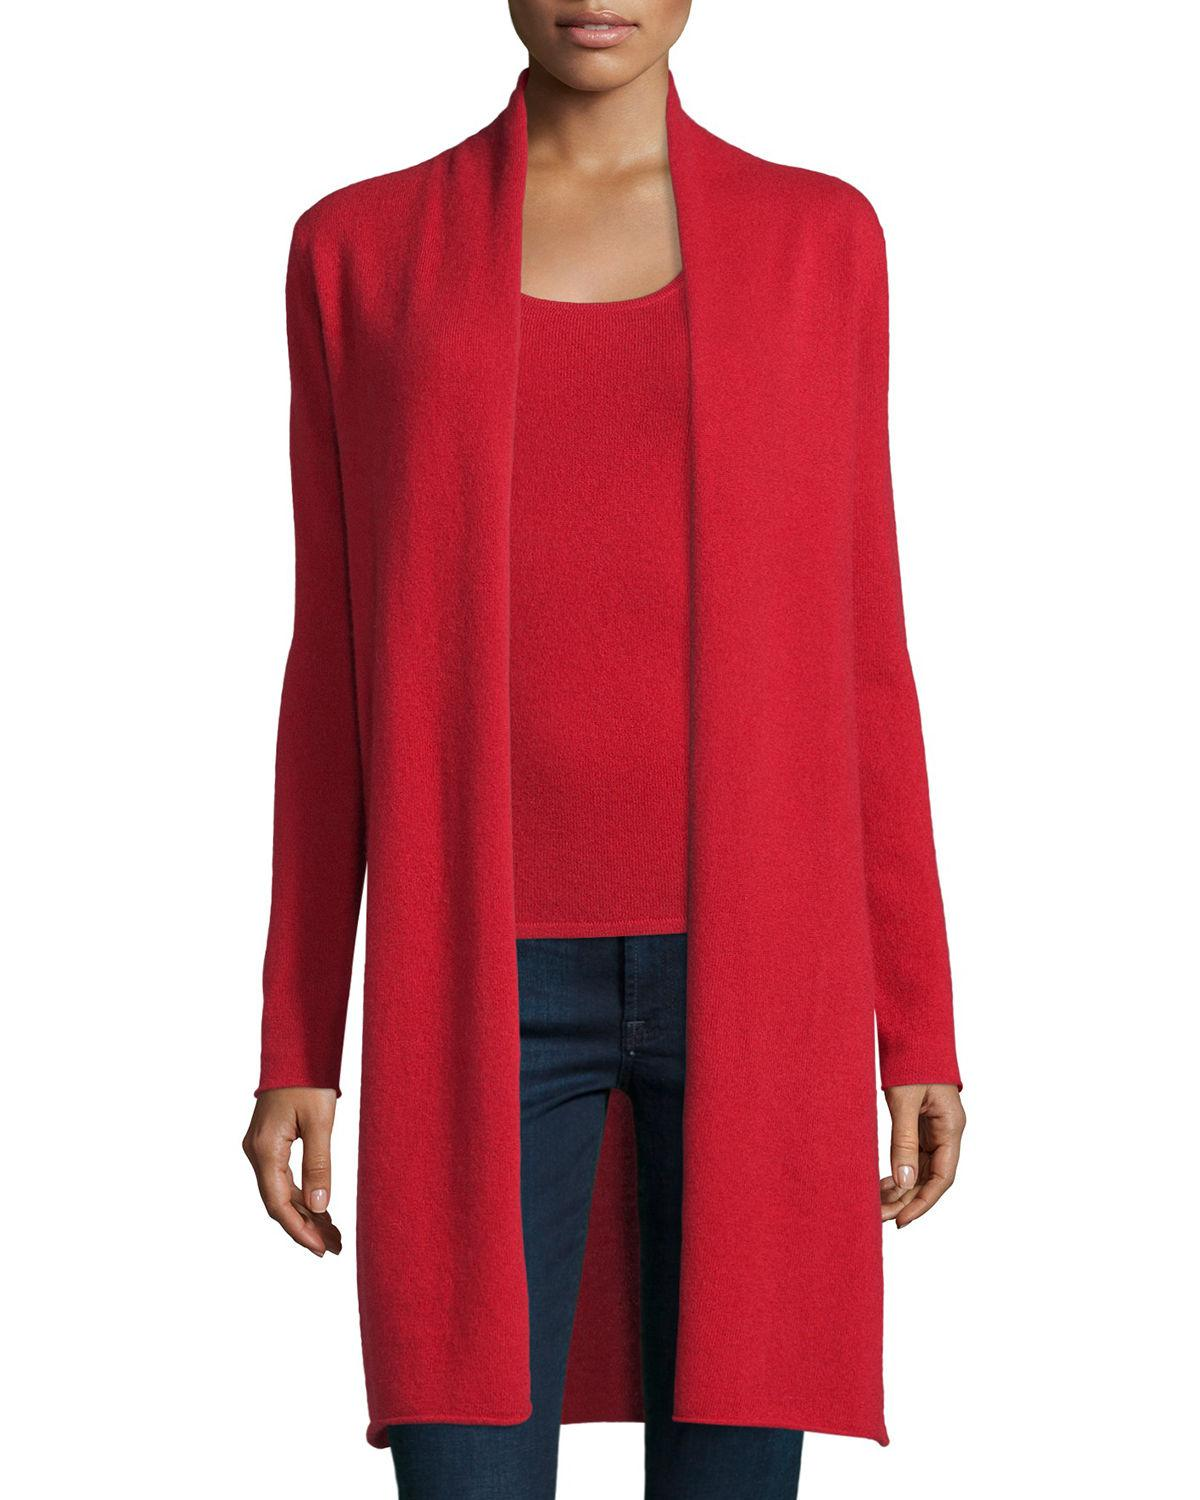 Red Duster Cardigan - Uomo Cardigan